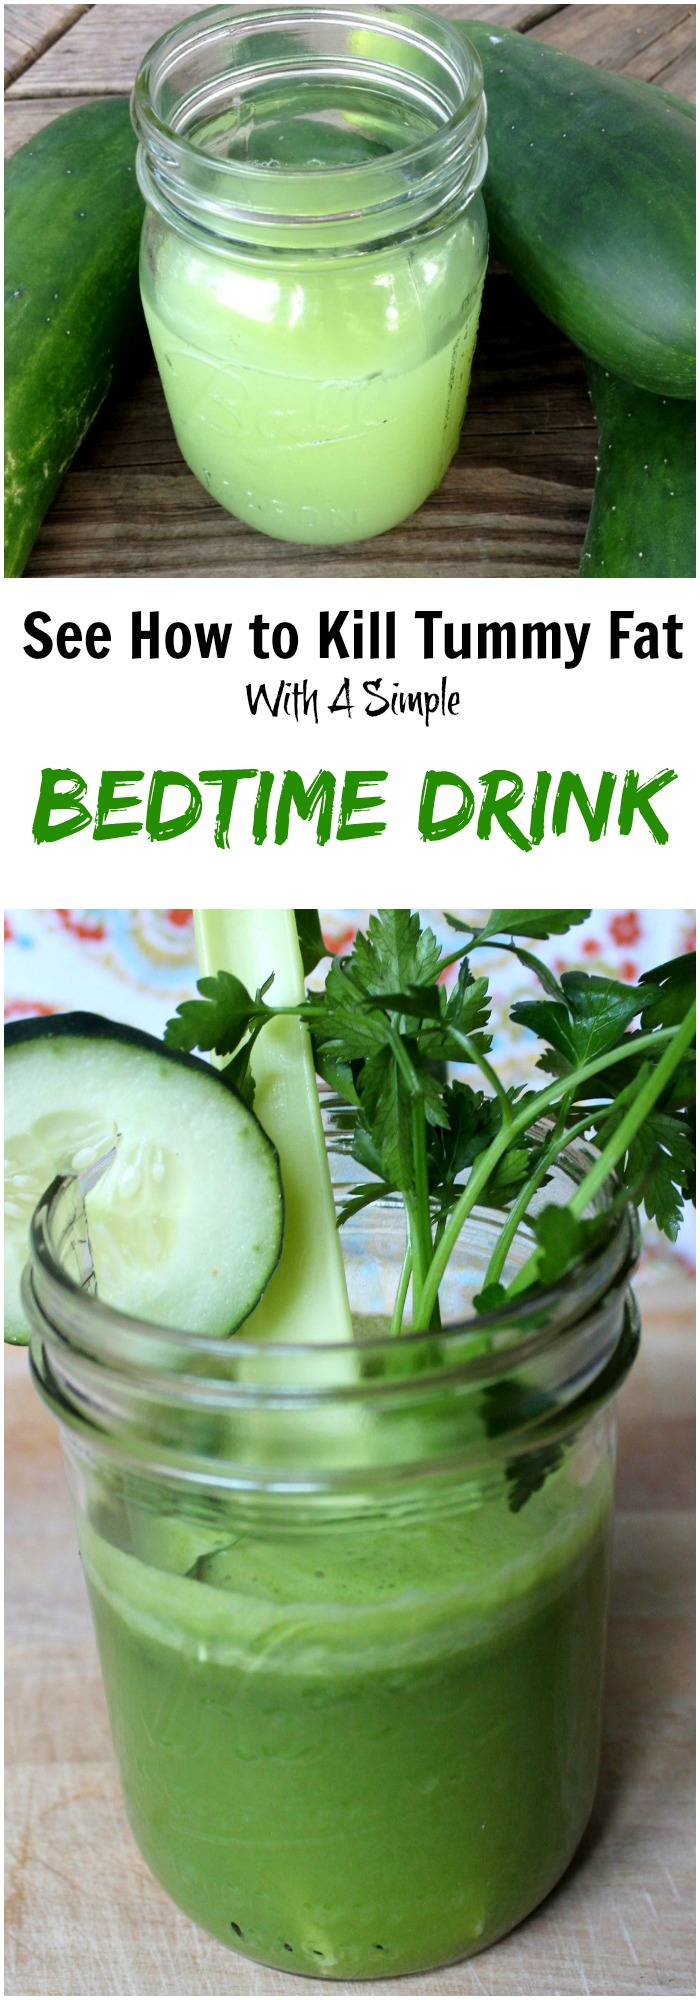 Want to lose up your belly fat? Here is the recipe of this Natural drink that can help you in doing this. Check out!